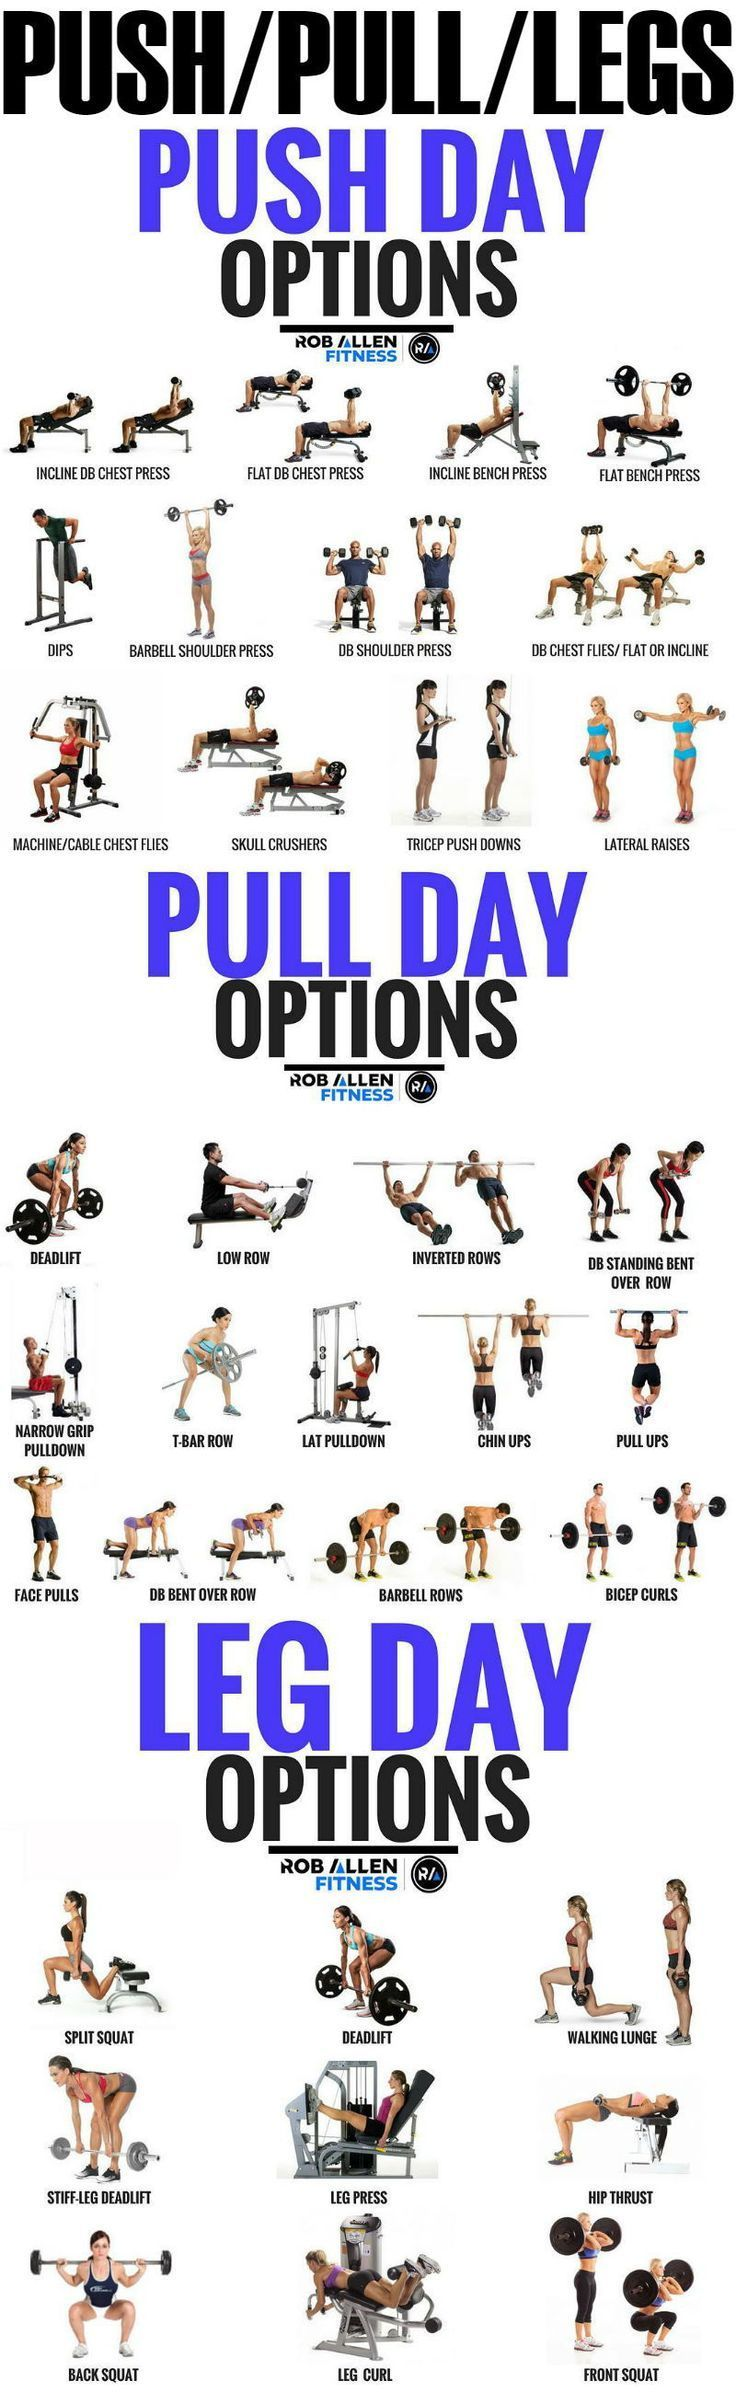 Push/Pull/Legs Weight Training Workout Schedule For 7 Days #fitness #exercises